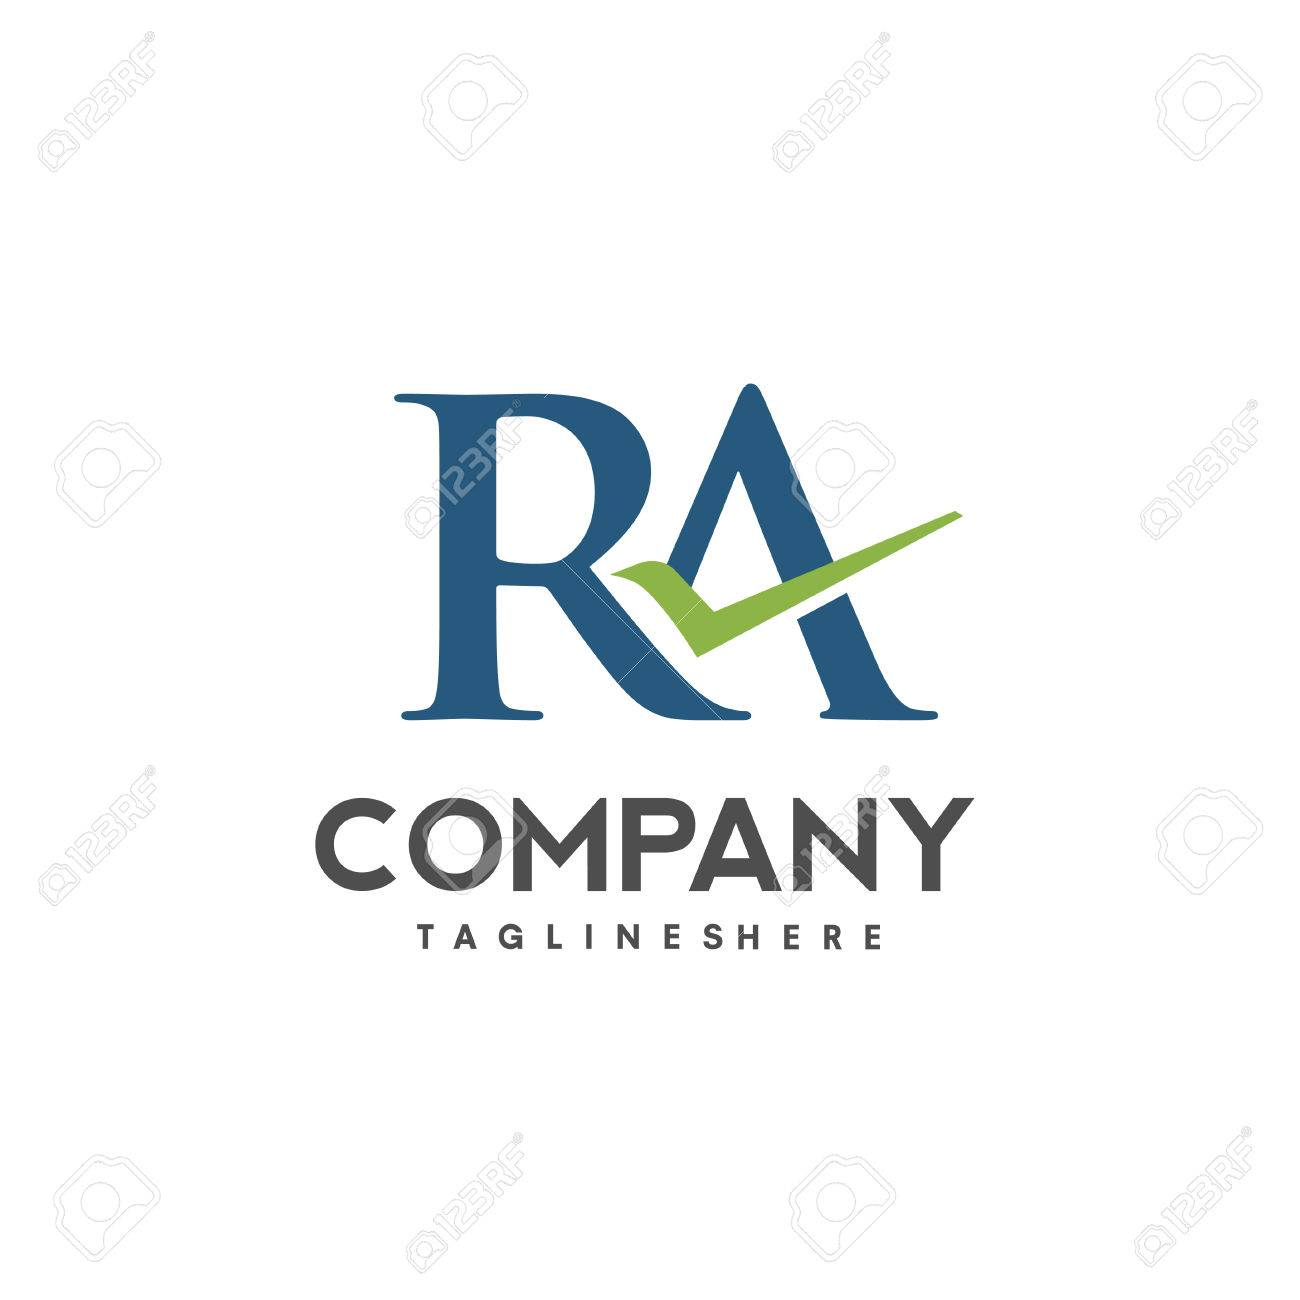 Ra Letter Logo Design Vector Illustration Template R Letter Royalty Free Cliparts Vectors And Stock Illustration Image 86026285